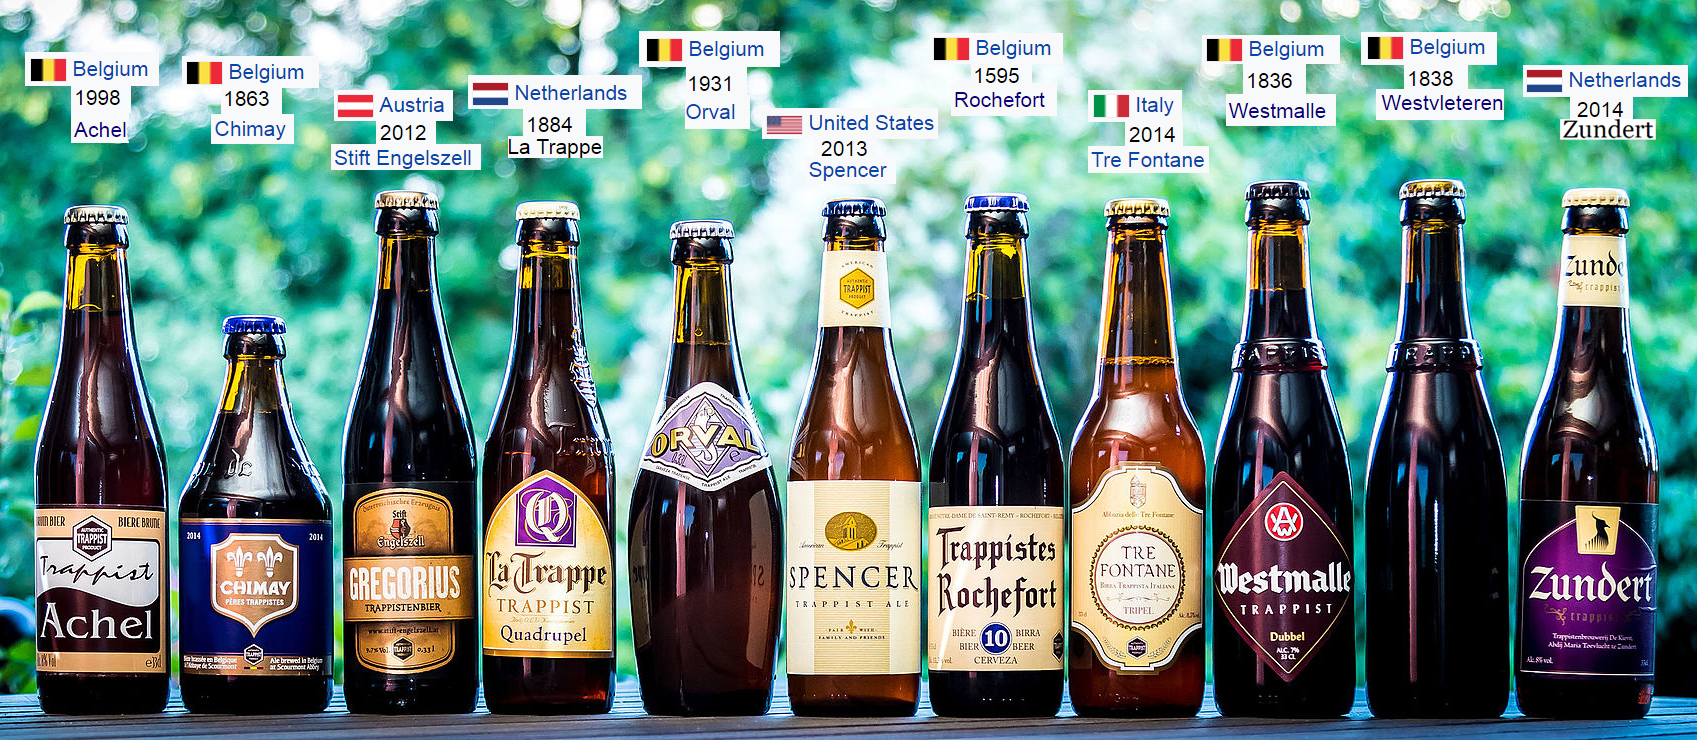 Trappist_Beer_2015-08-15.jpg